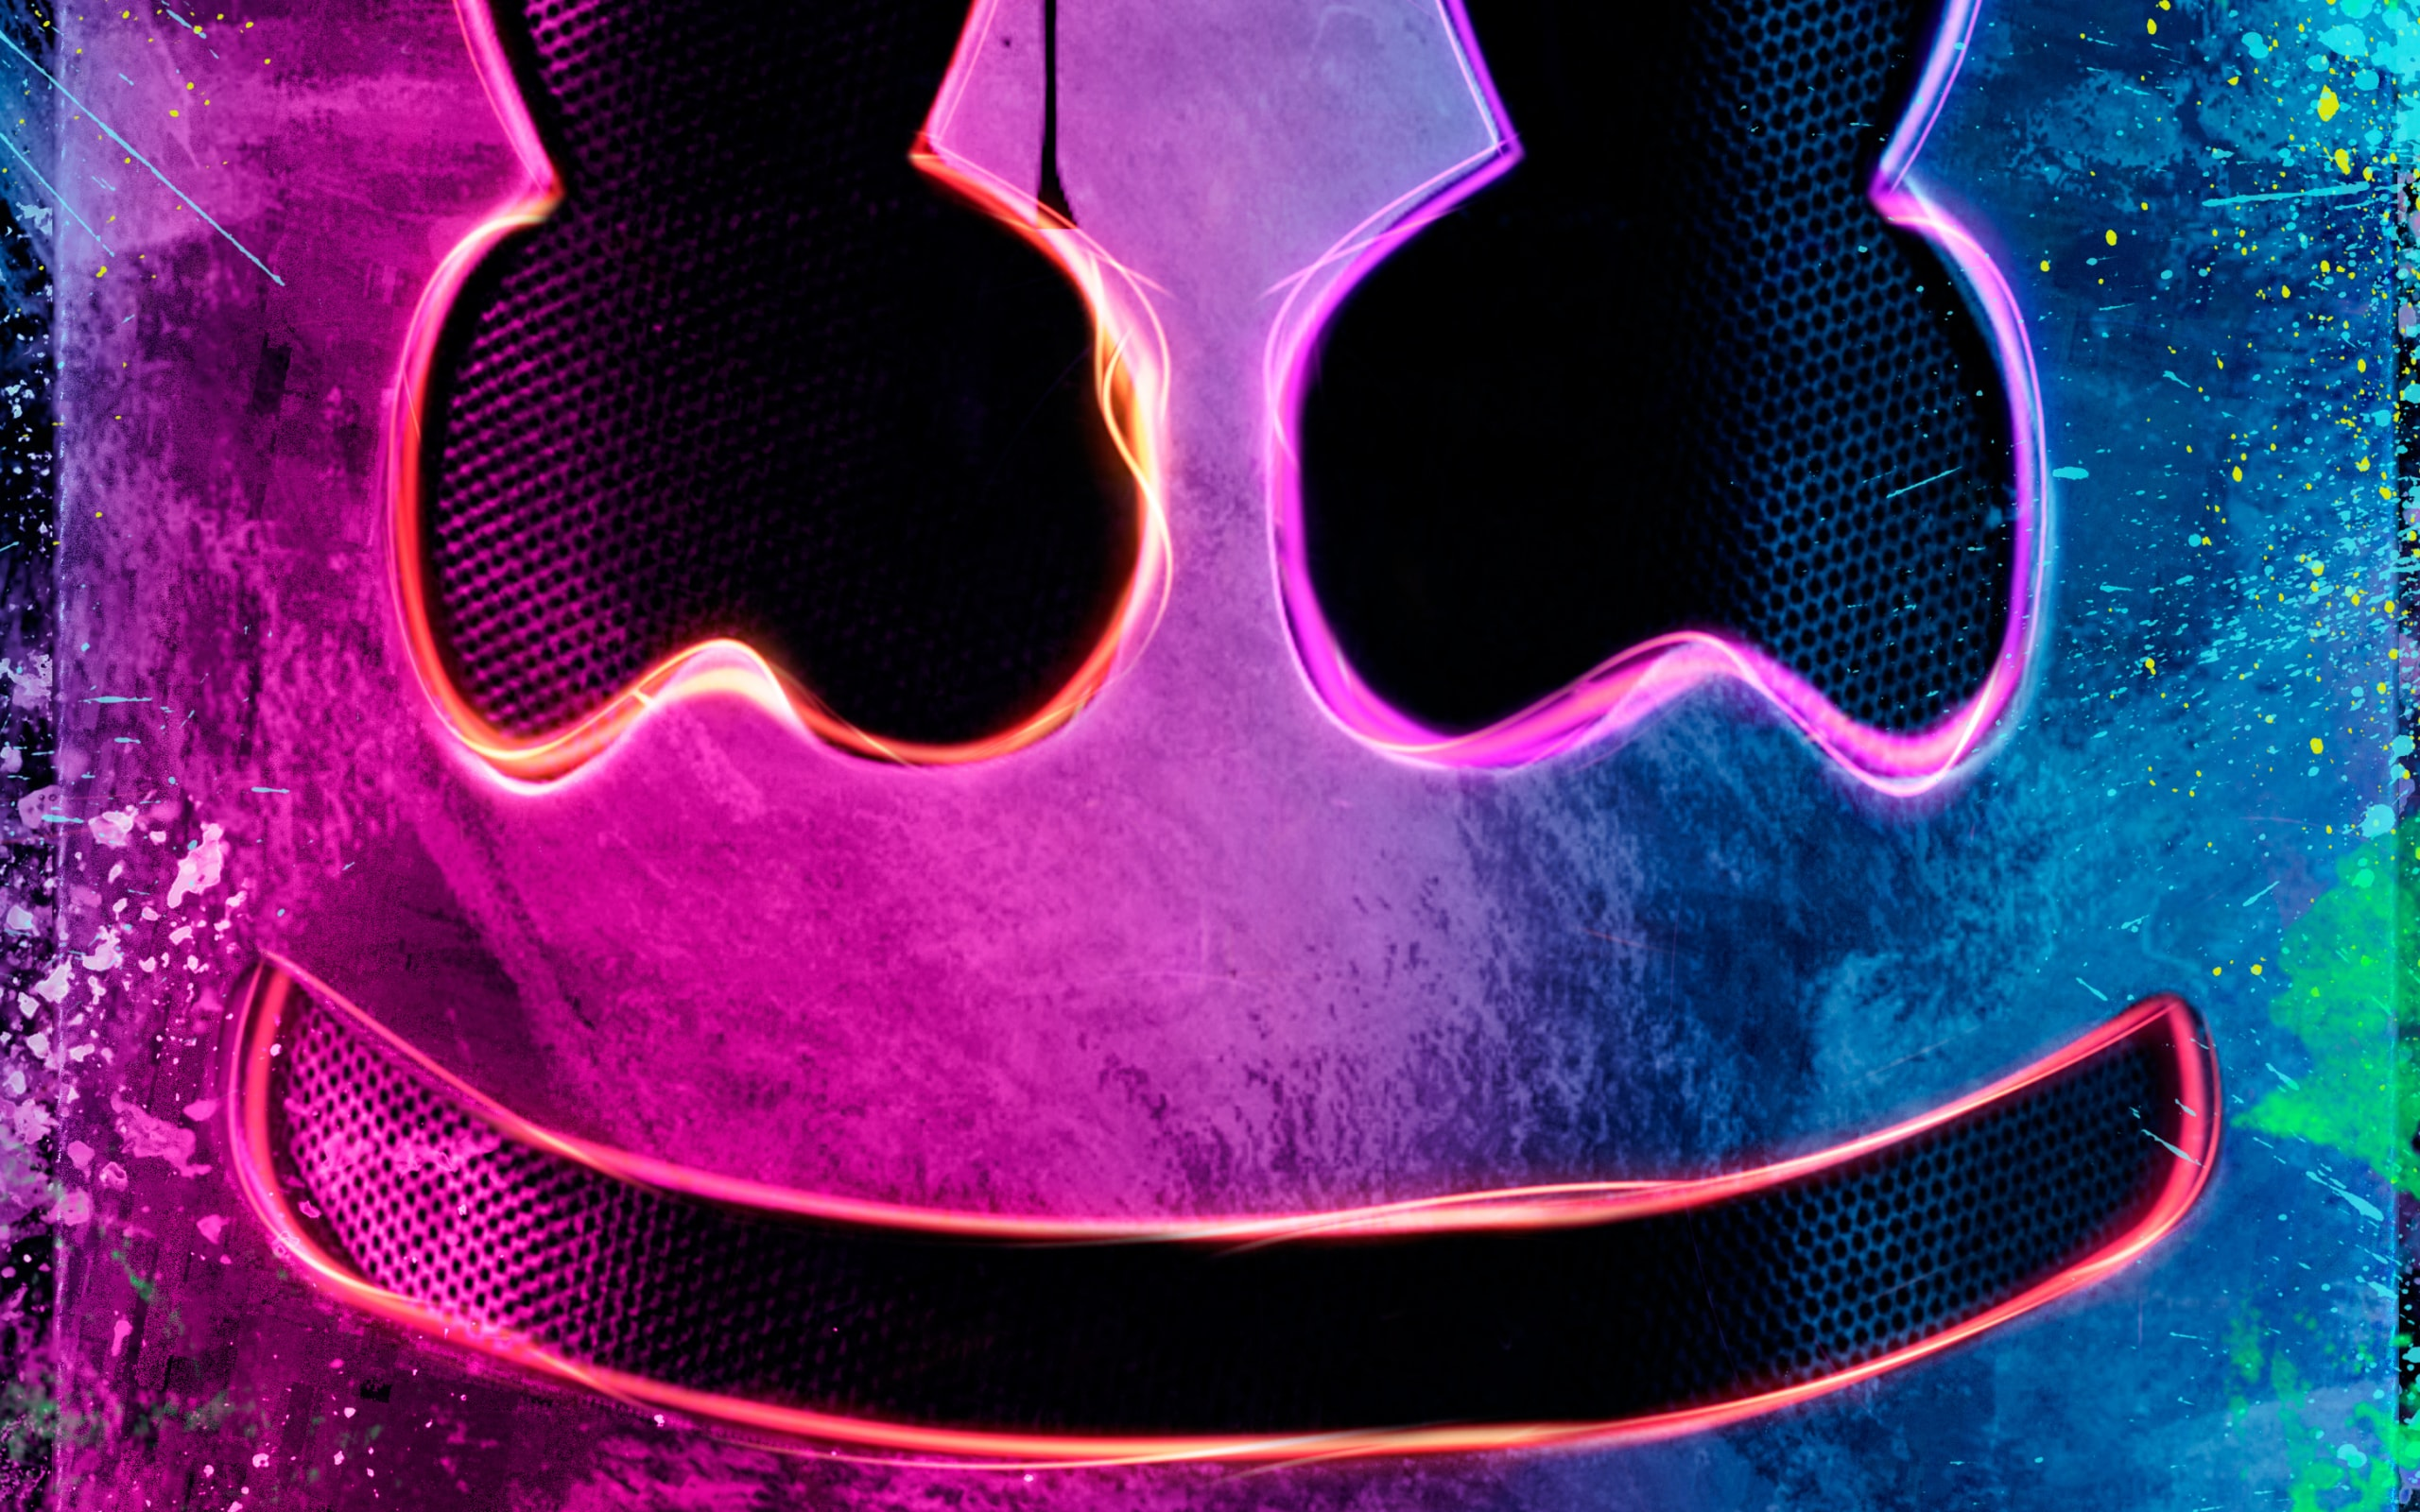 Cool 3d Wallpapers Nature Wallpaper Of Dj Marshmello Music Background Amp Hd Image